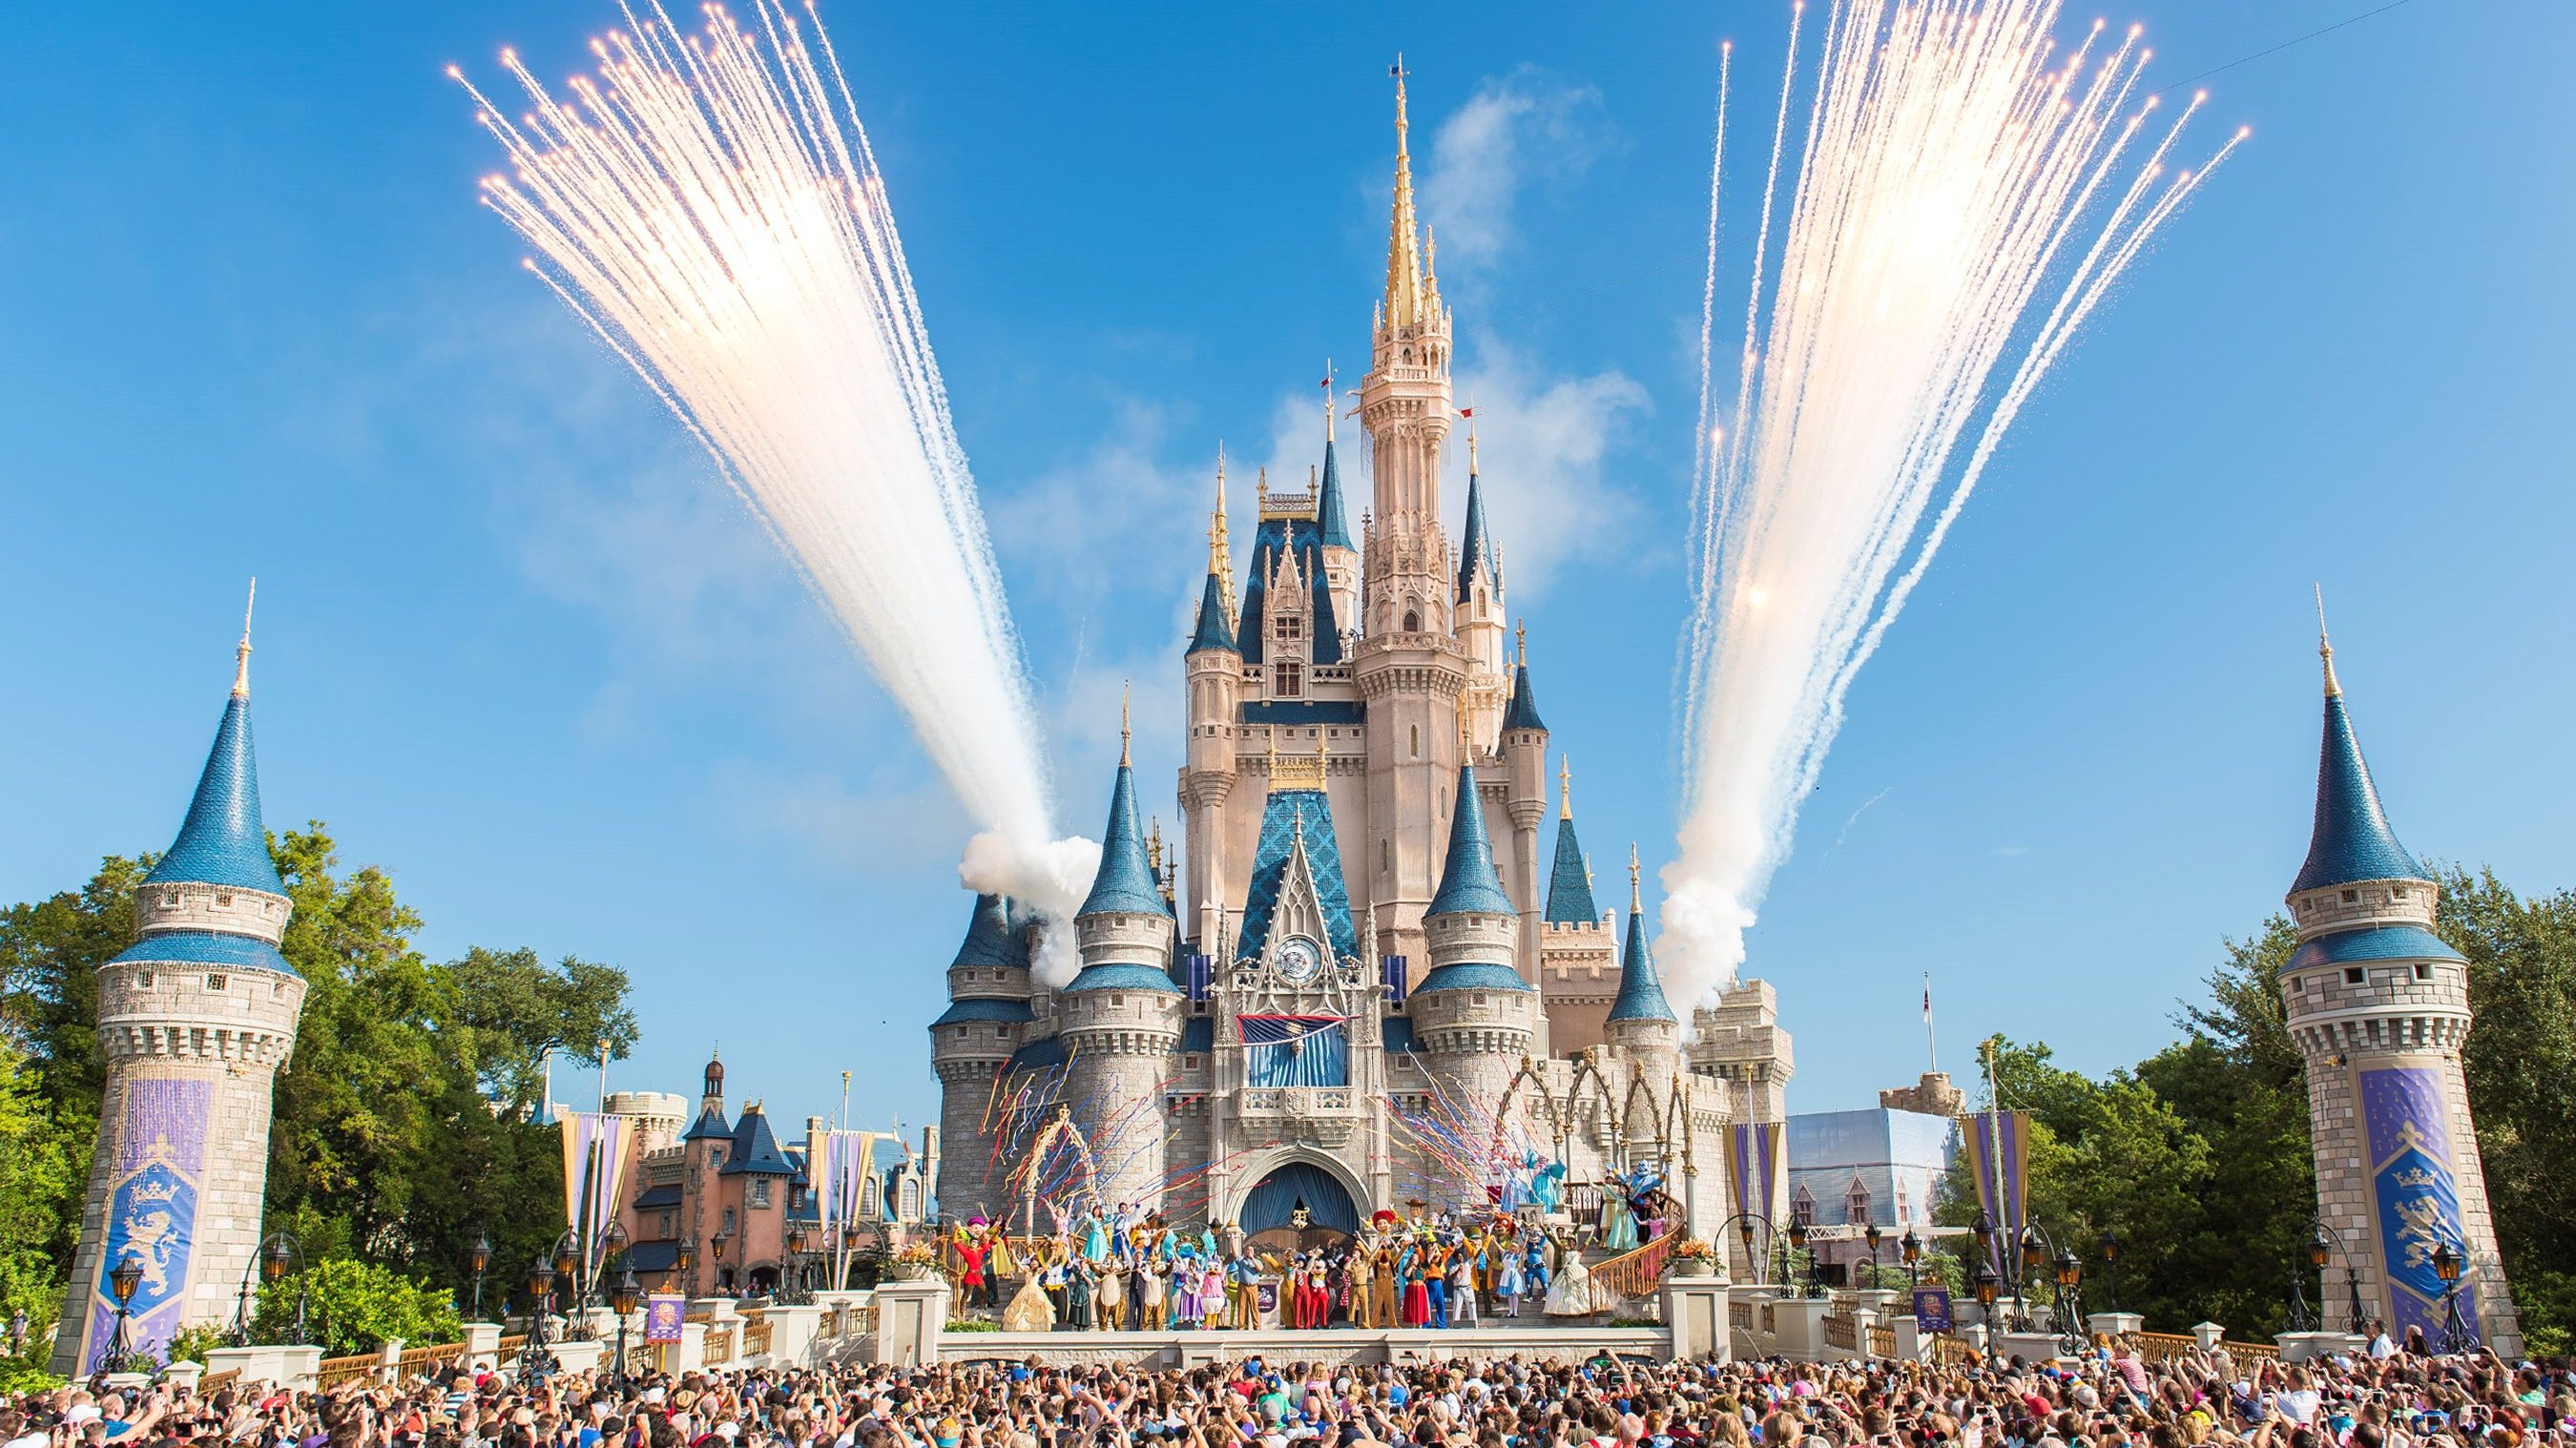 Why are some of the Disney theme parks opening while others remain closed  as COVID-19 surges? - Marketplace